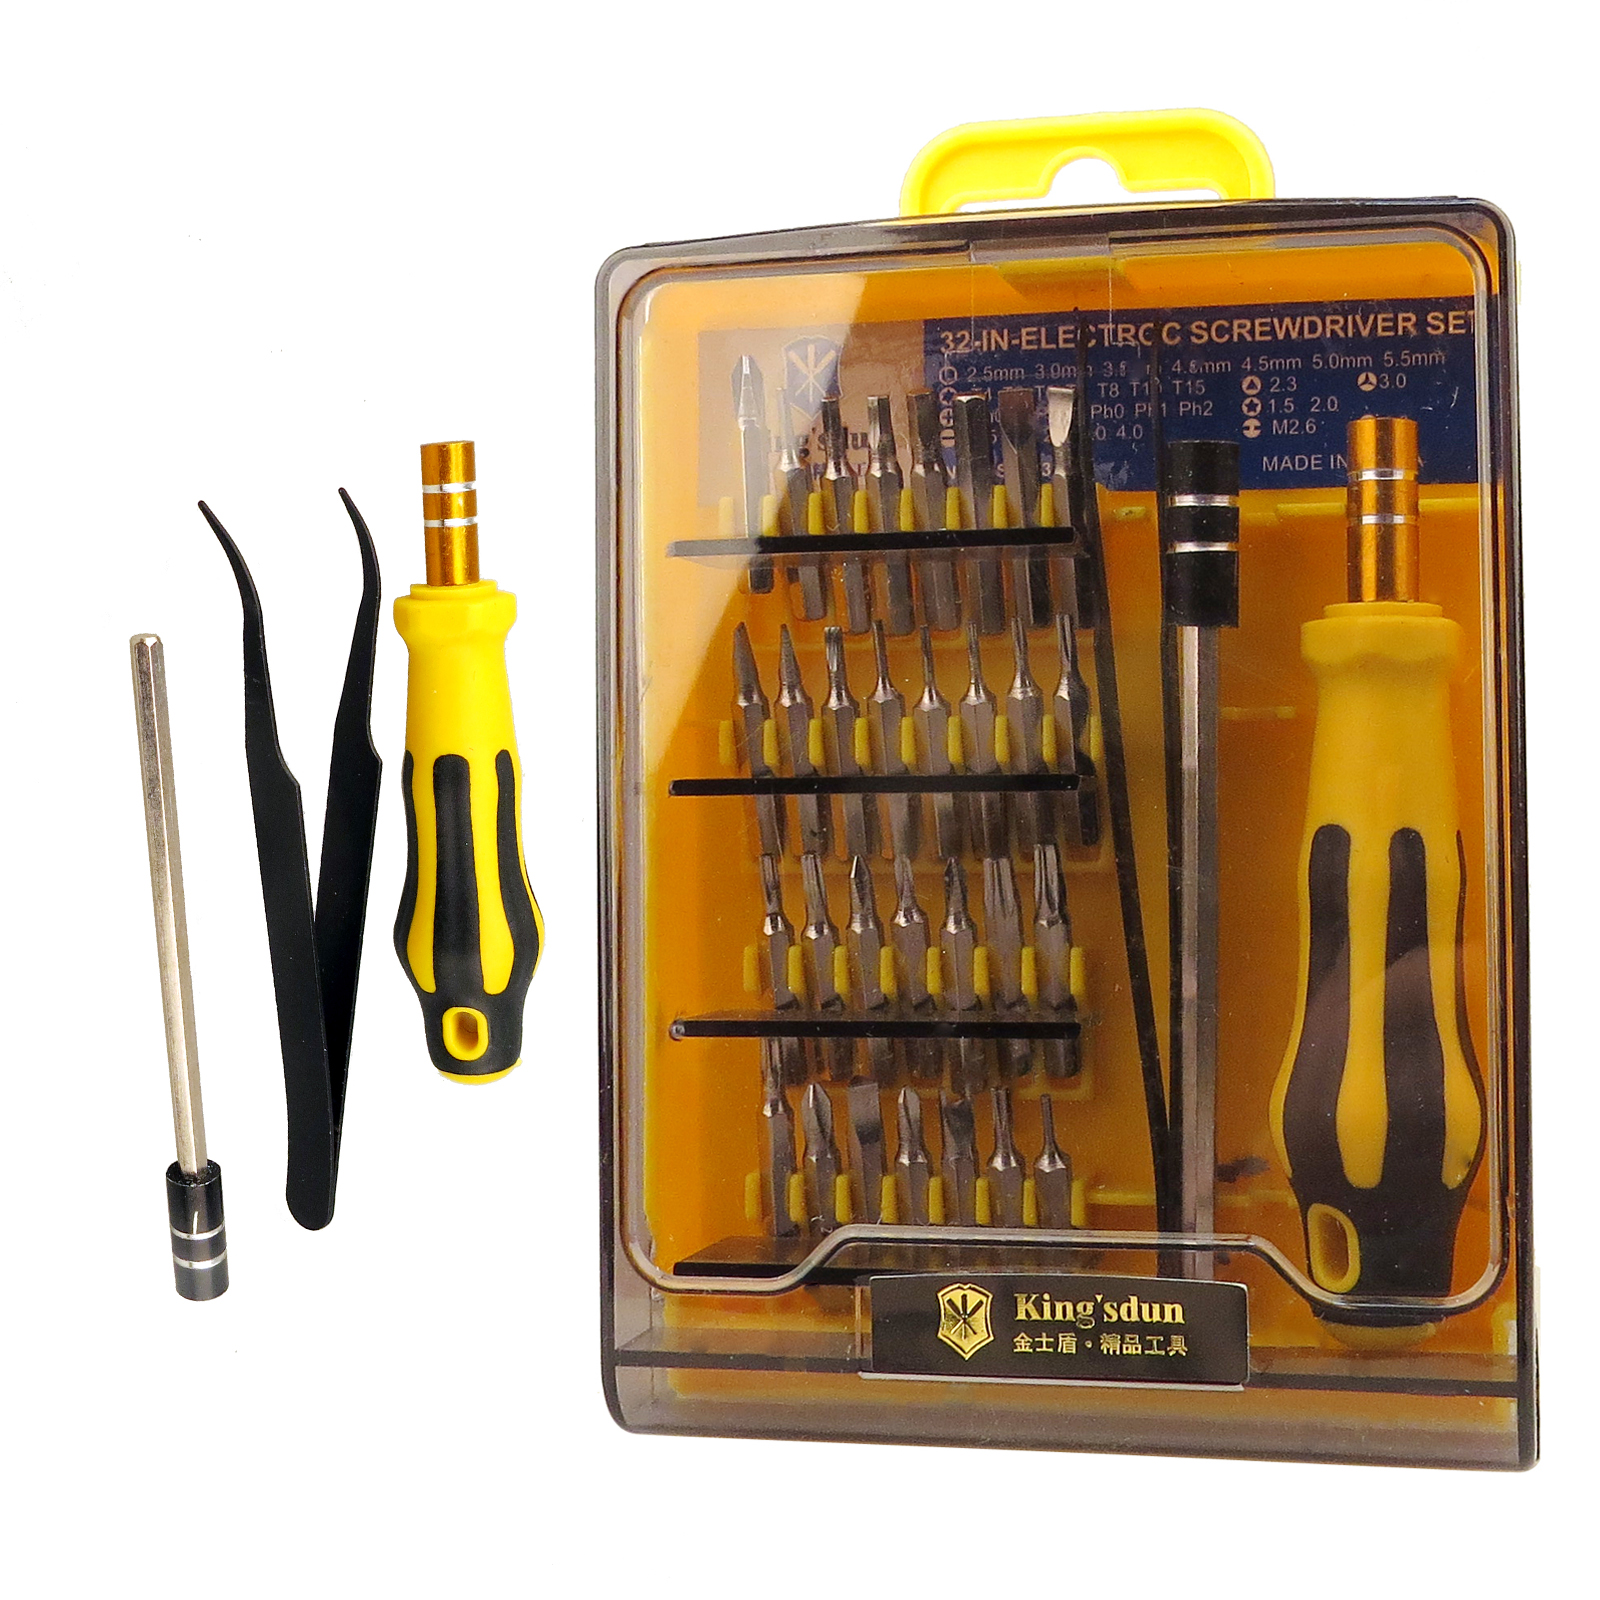 33 in 1 precision torx star hex security screwdriver pc mobile repair tool set ebay. Black Bedroom Furniture Sets. Home Design Ideas